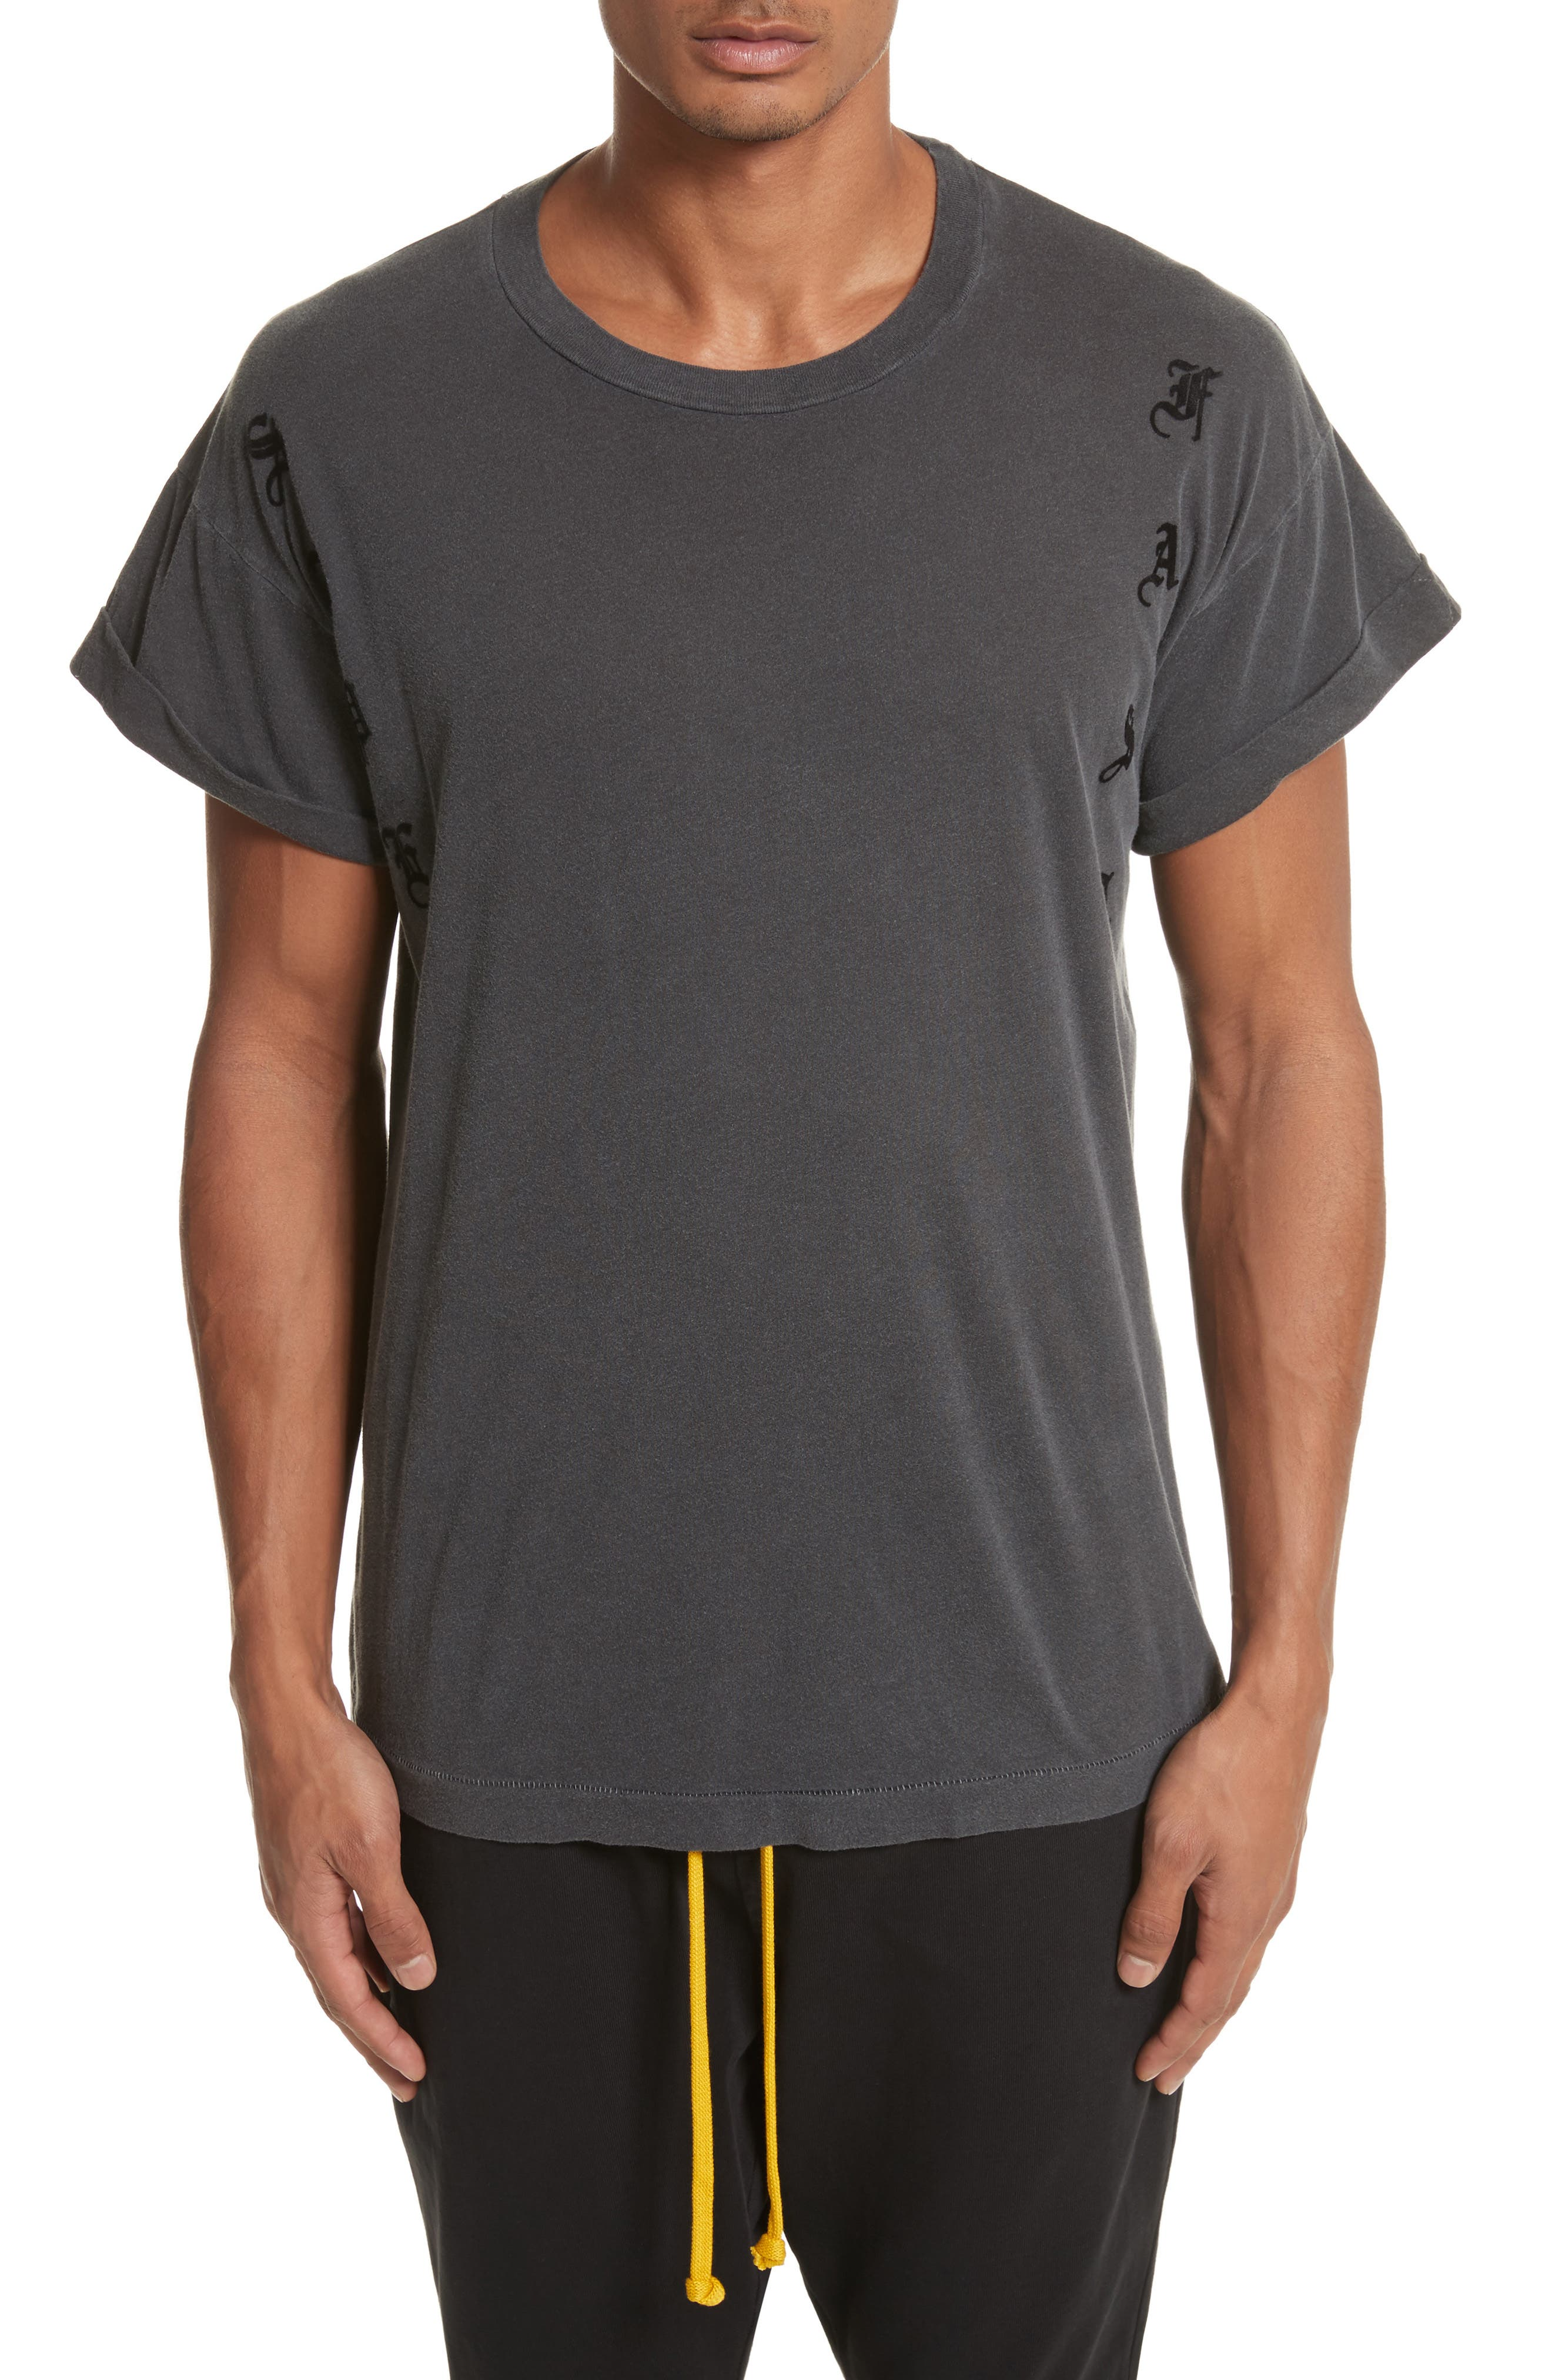 Abassi Embroidered T-Shirt,                             Main thumbnail 1, color,                             001